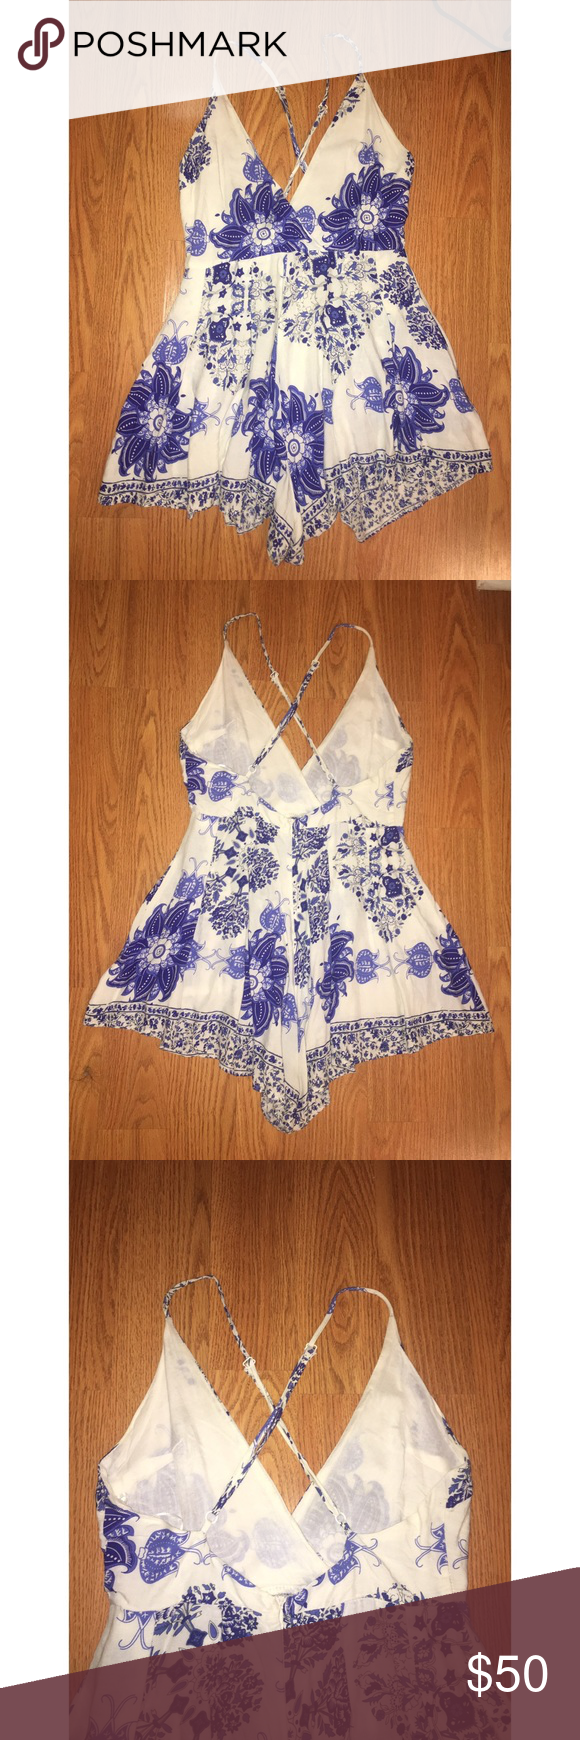 5fe42927db84 LF Blue and White floral romper NEVER WORN. Adjustable straps